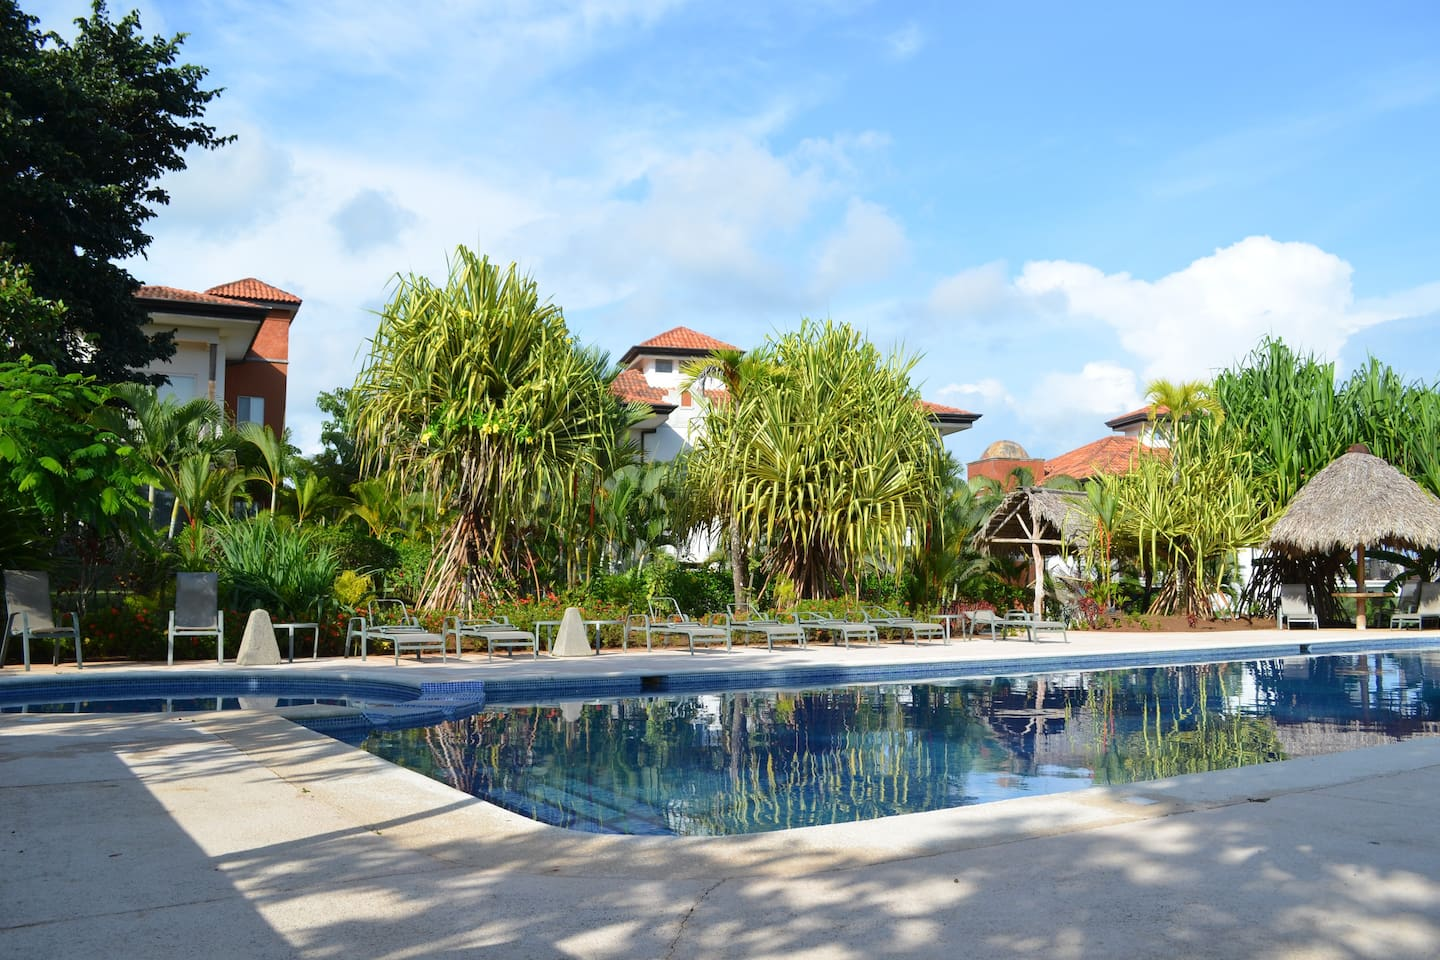 Your condo occupies the whole ground floor - a stones throw from the pool!